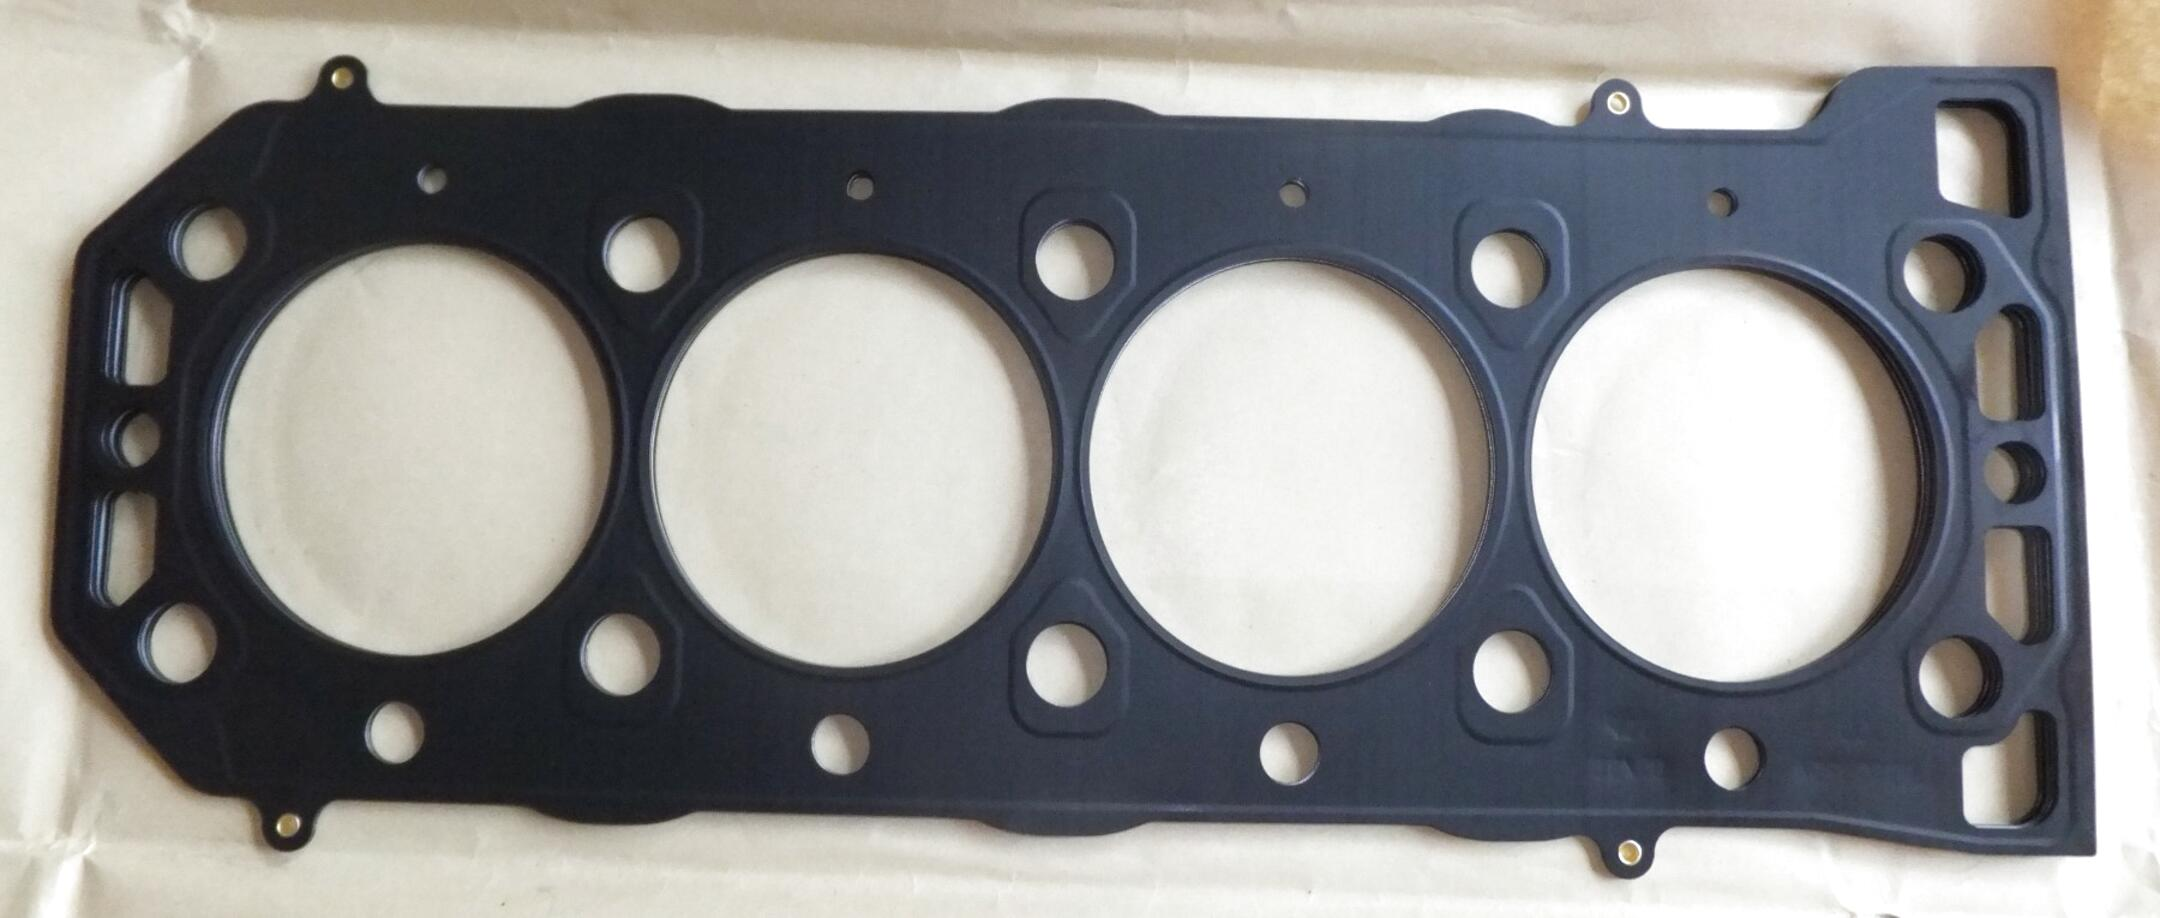 k series head gasket replacement for sale